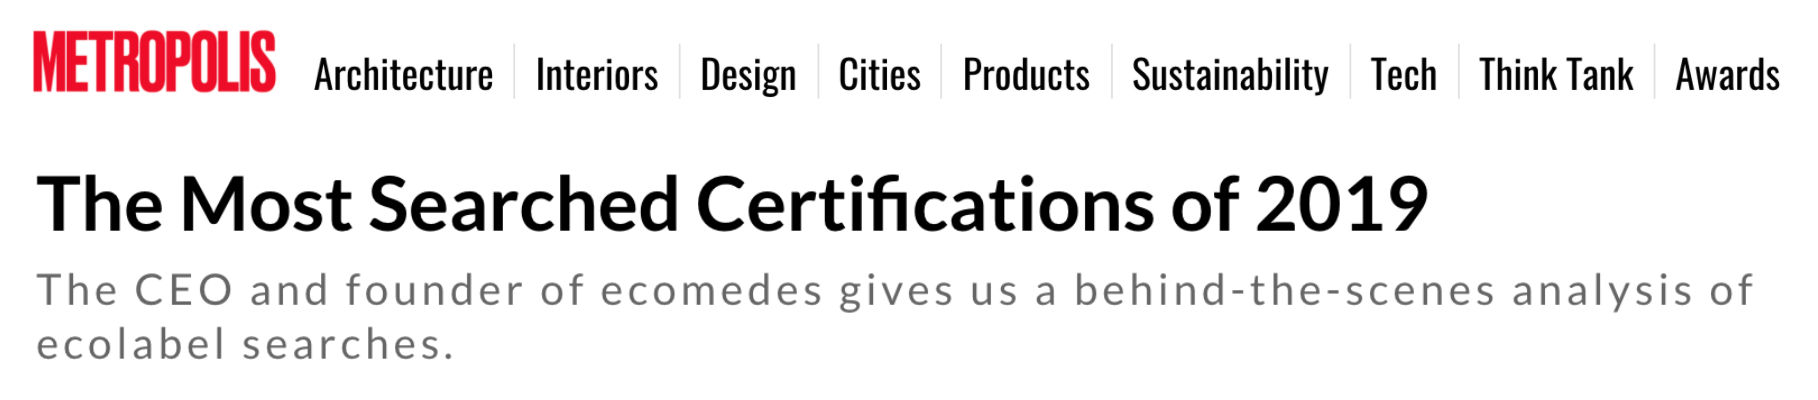 Metropolis Magazine: The Most Searched Certifications of 2019